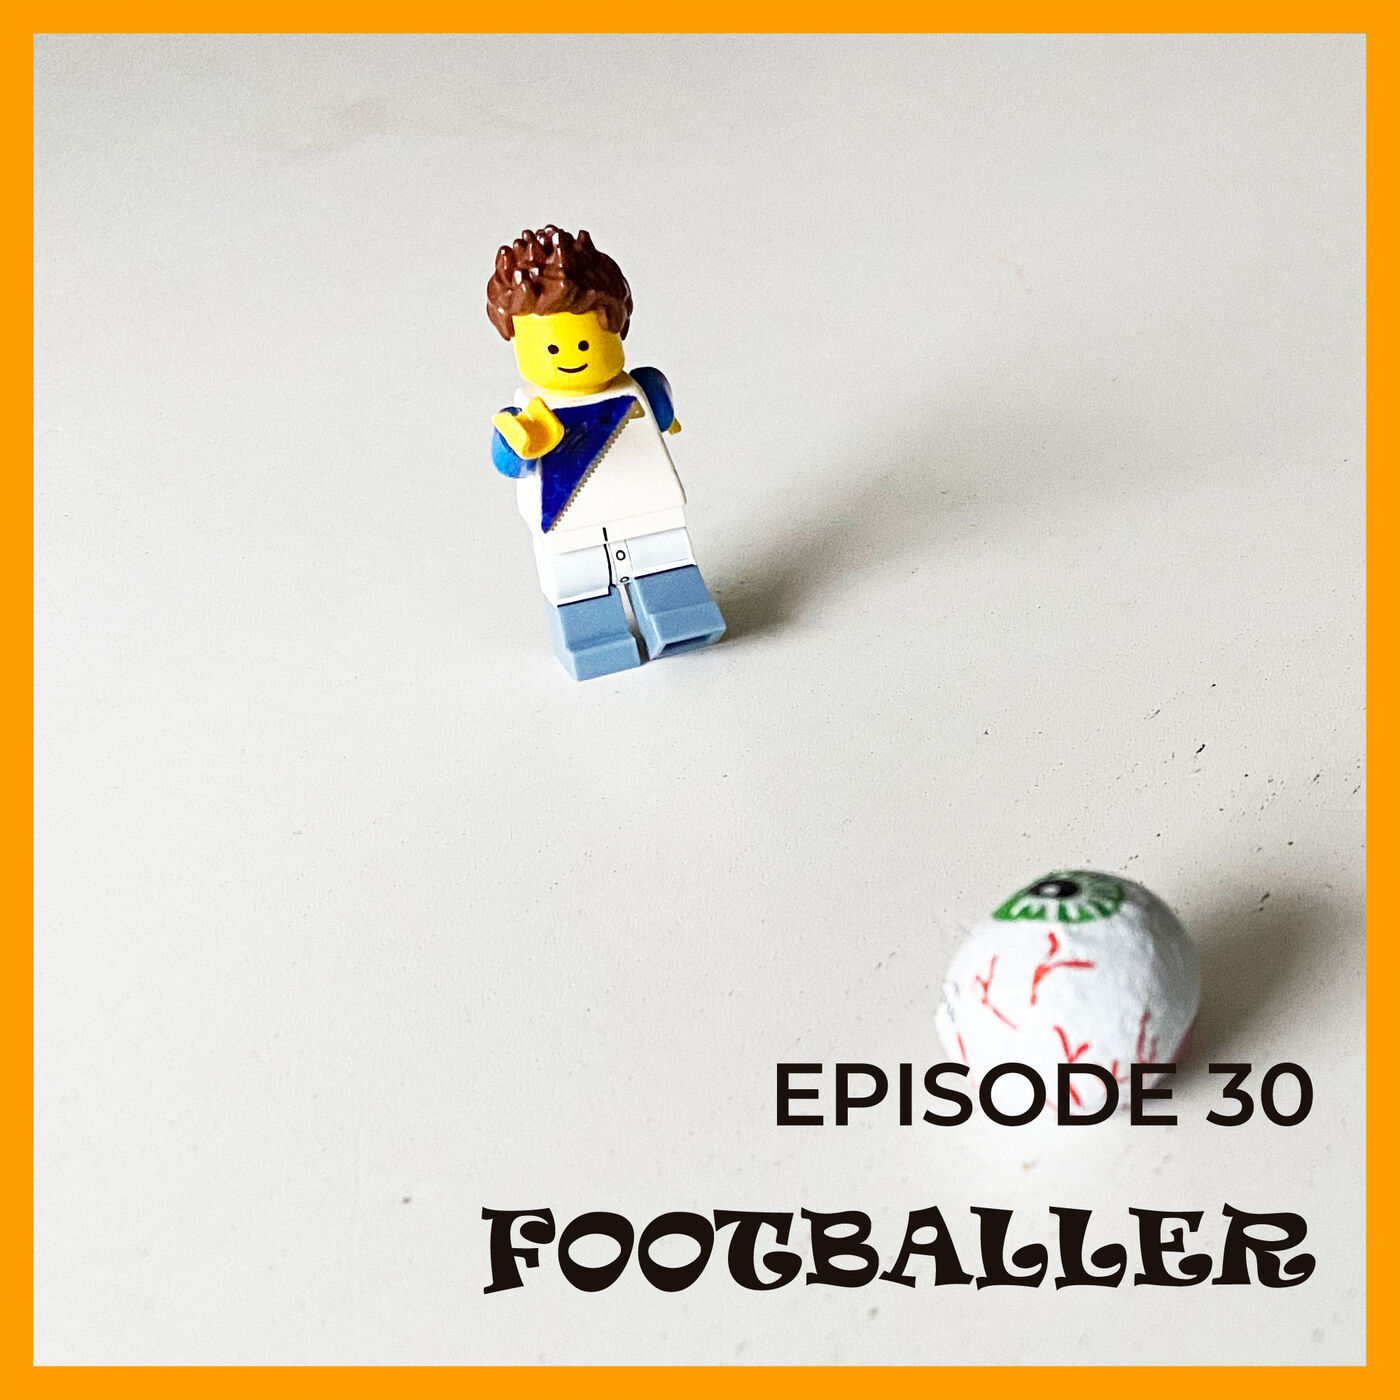 The Professional Footballer